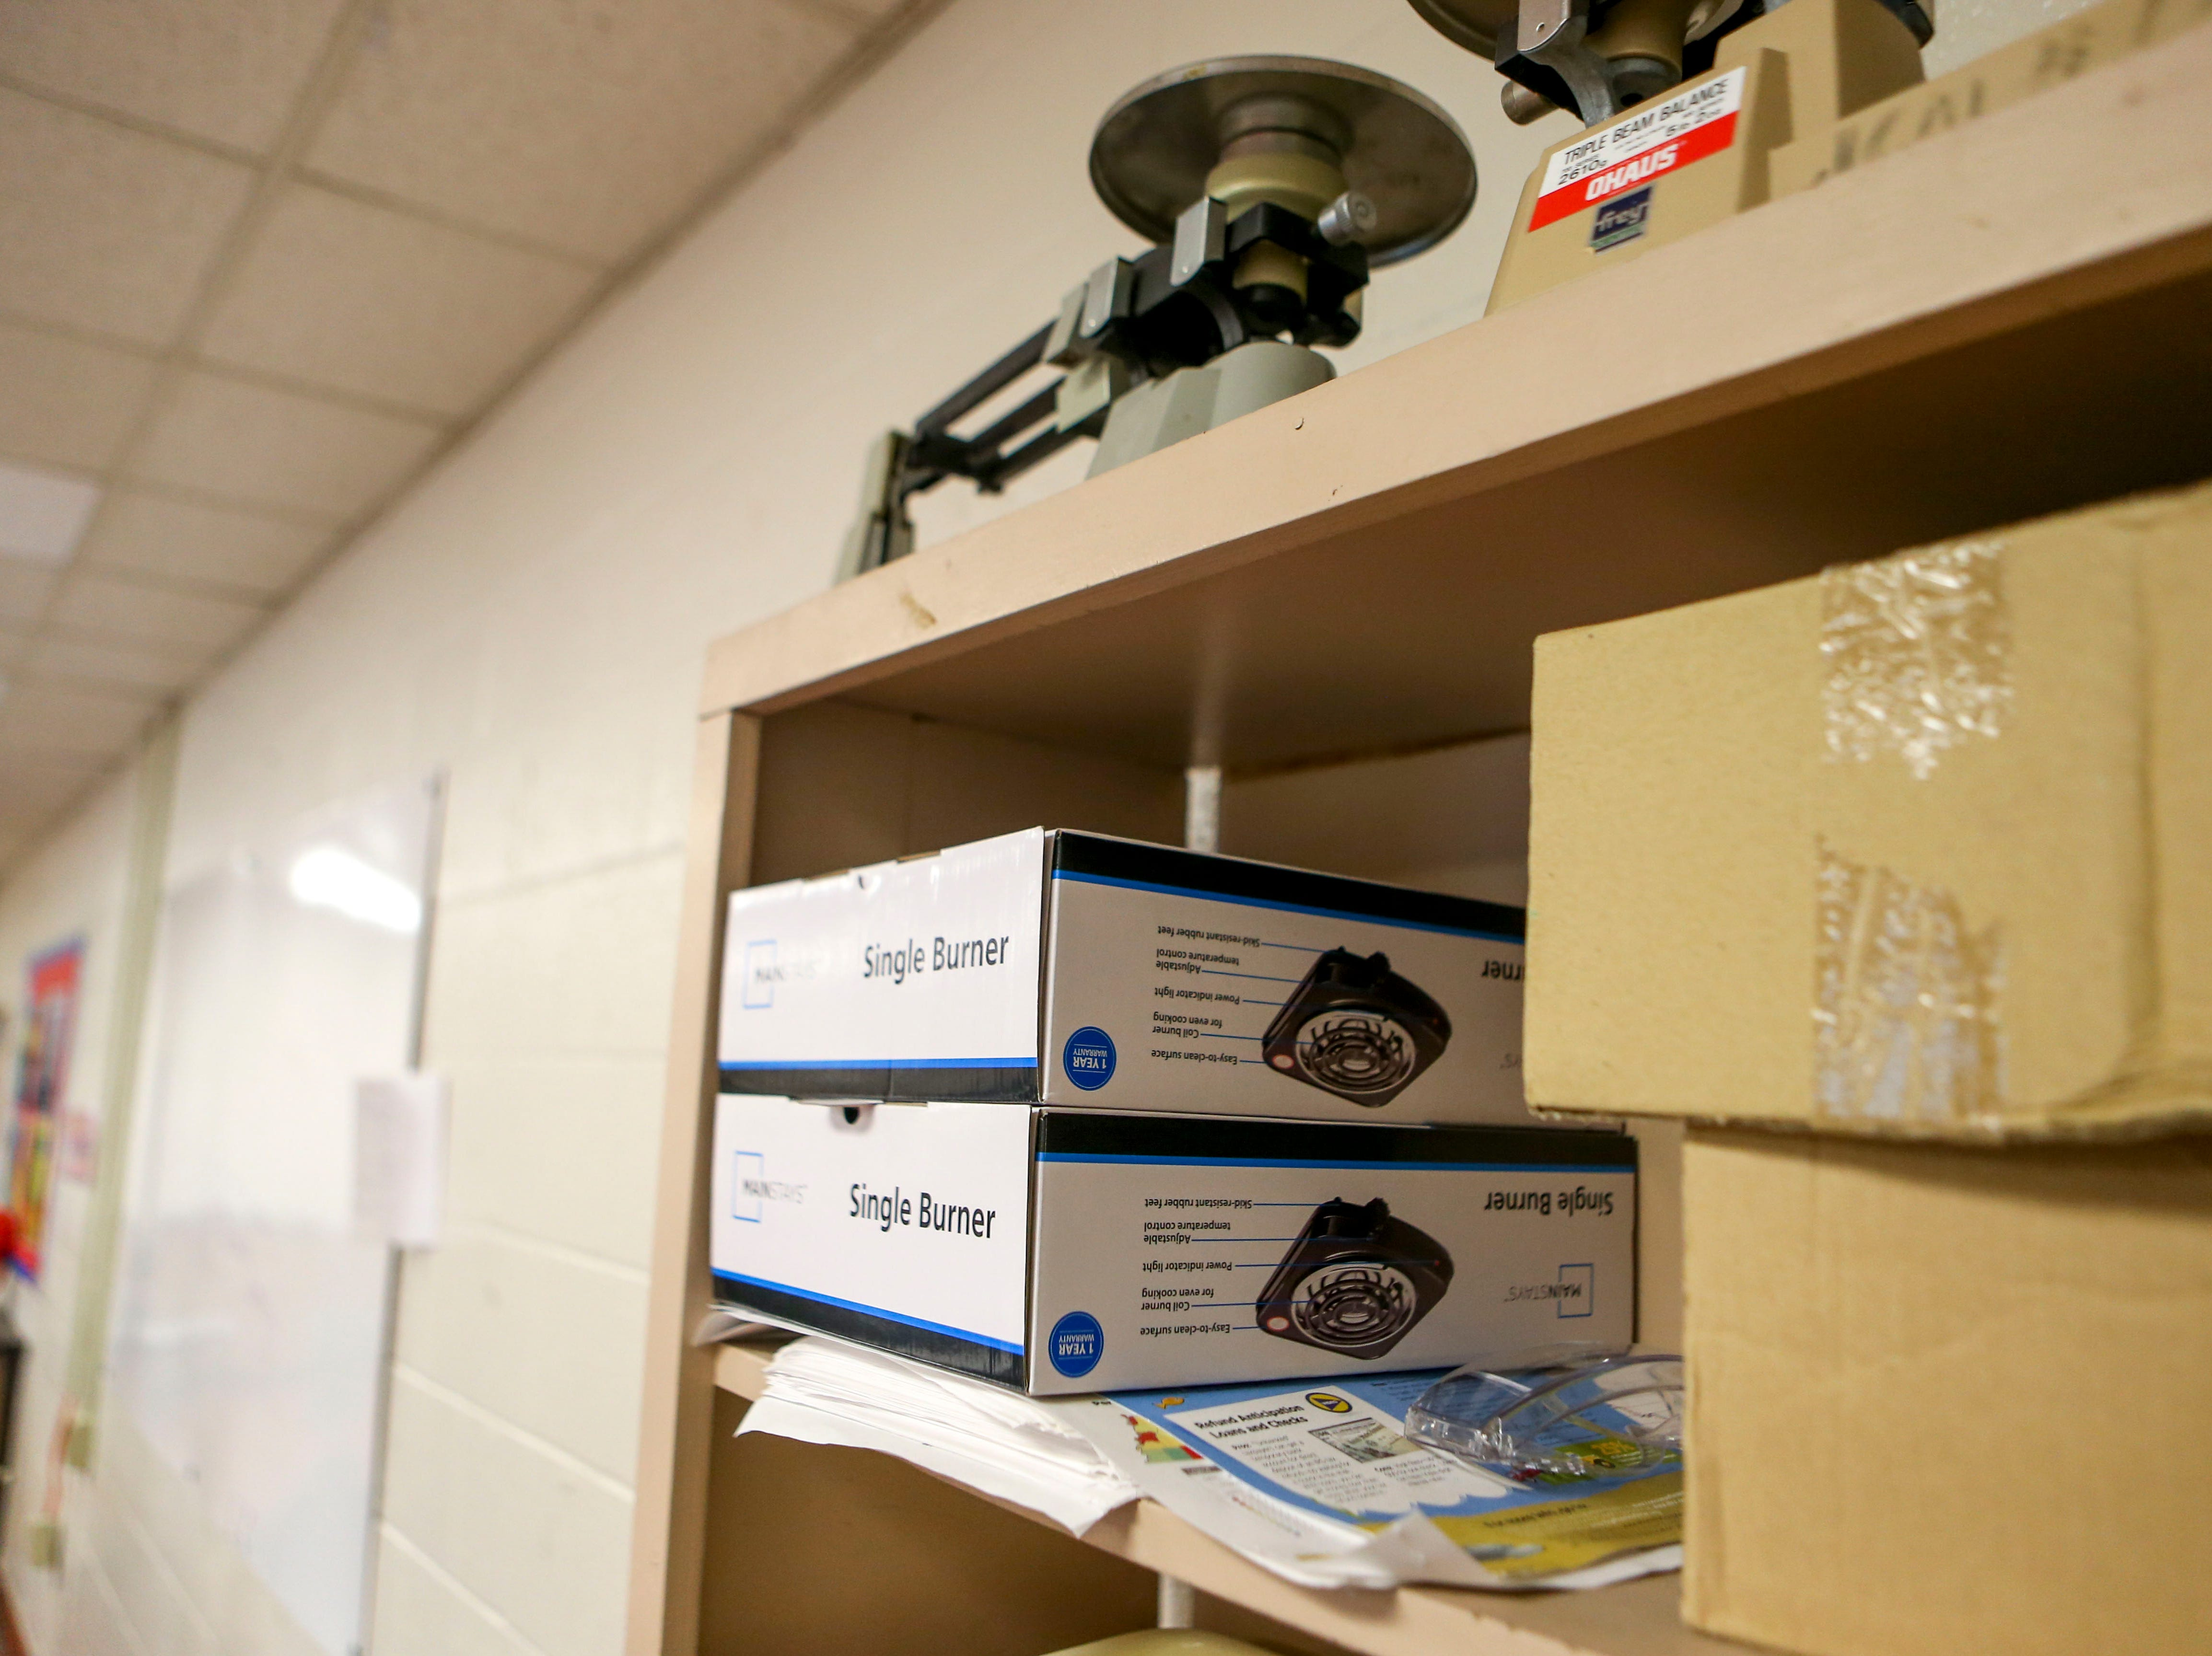 Various equipment can be seen lining the shelves of a science class at Jackson Central-Merry in Jackson, Tenn., on Tuesday, Jan. 29, 2019.